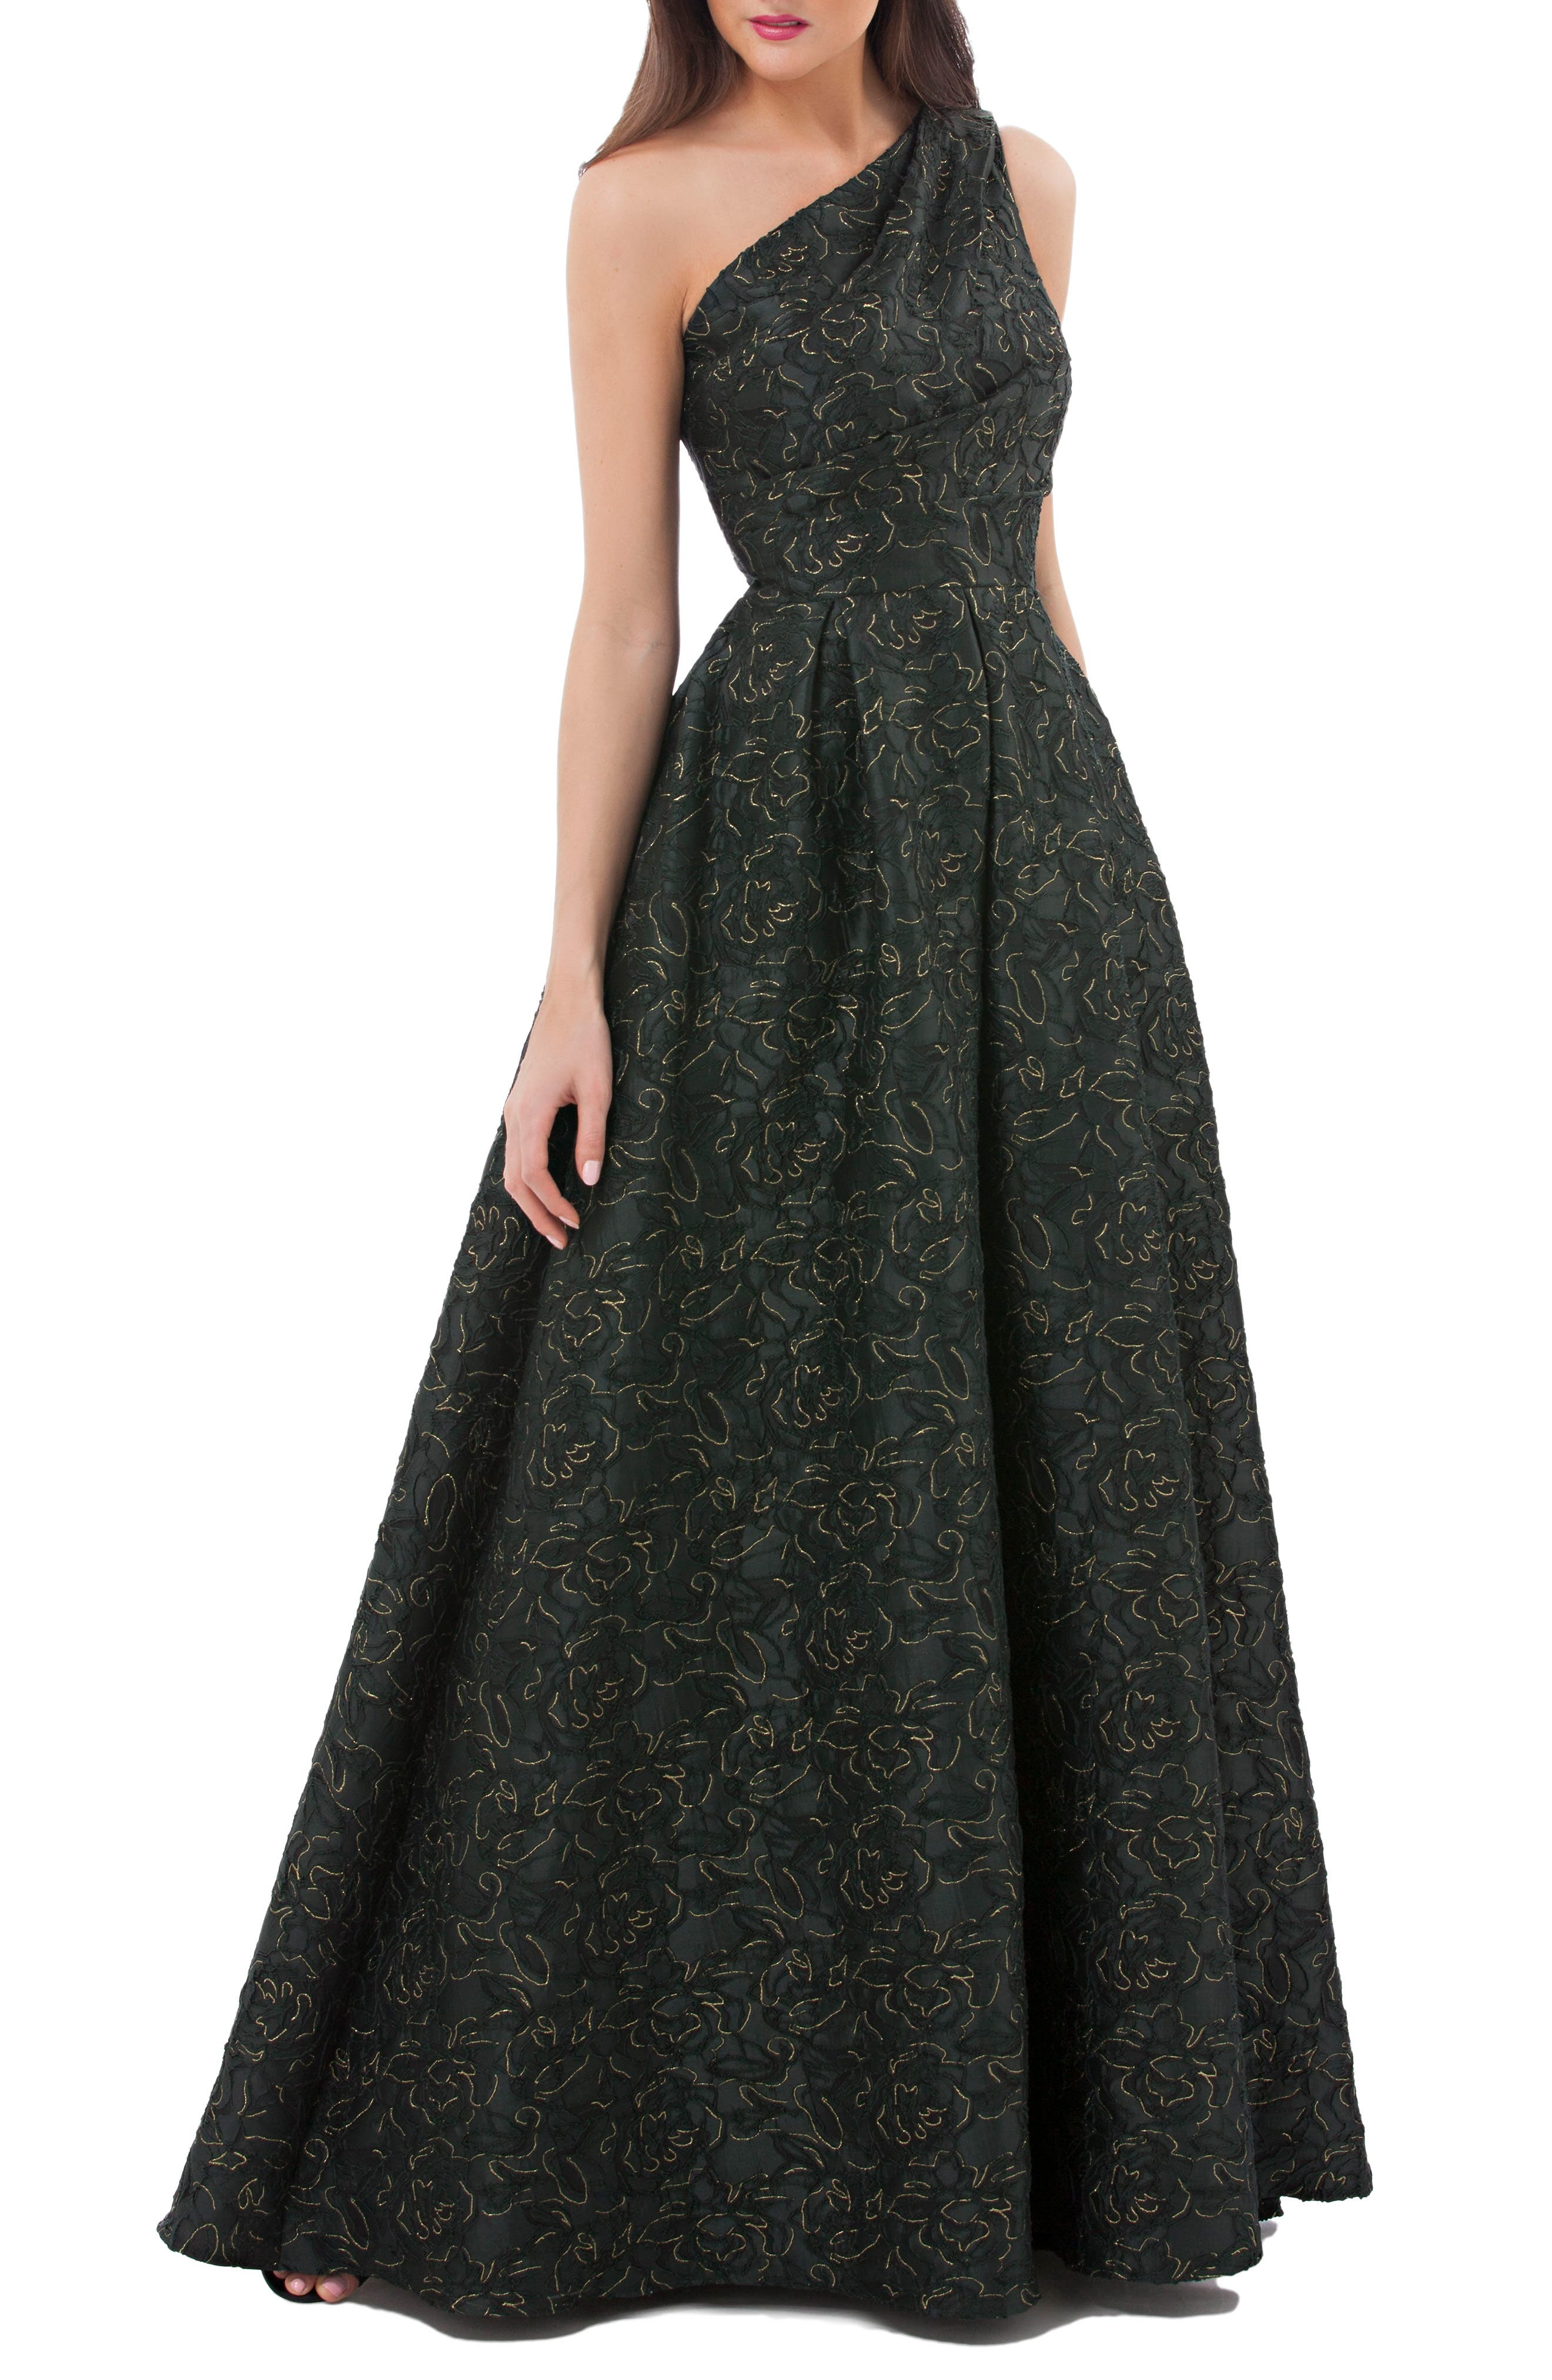 Main Image - Carmen Marc Valvo Infusion Metallic Brocade One-Shoulder Gown